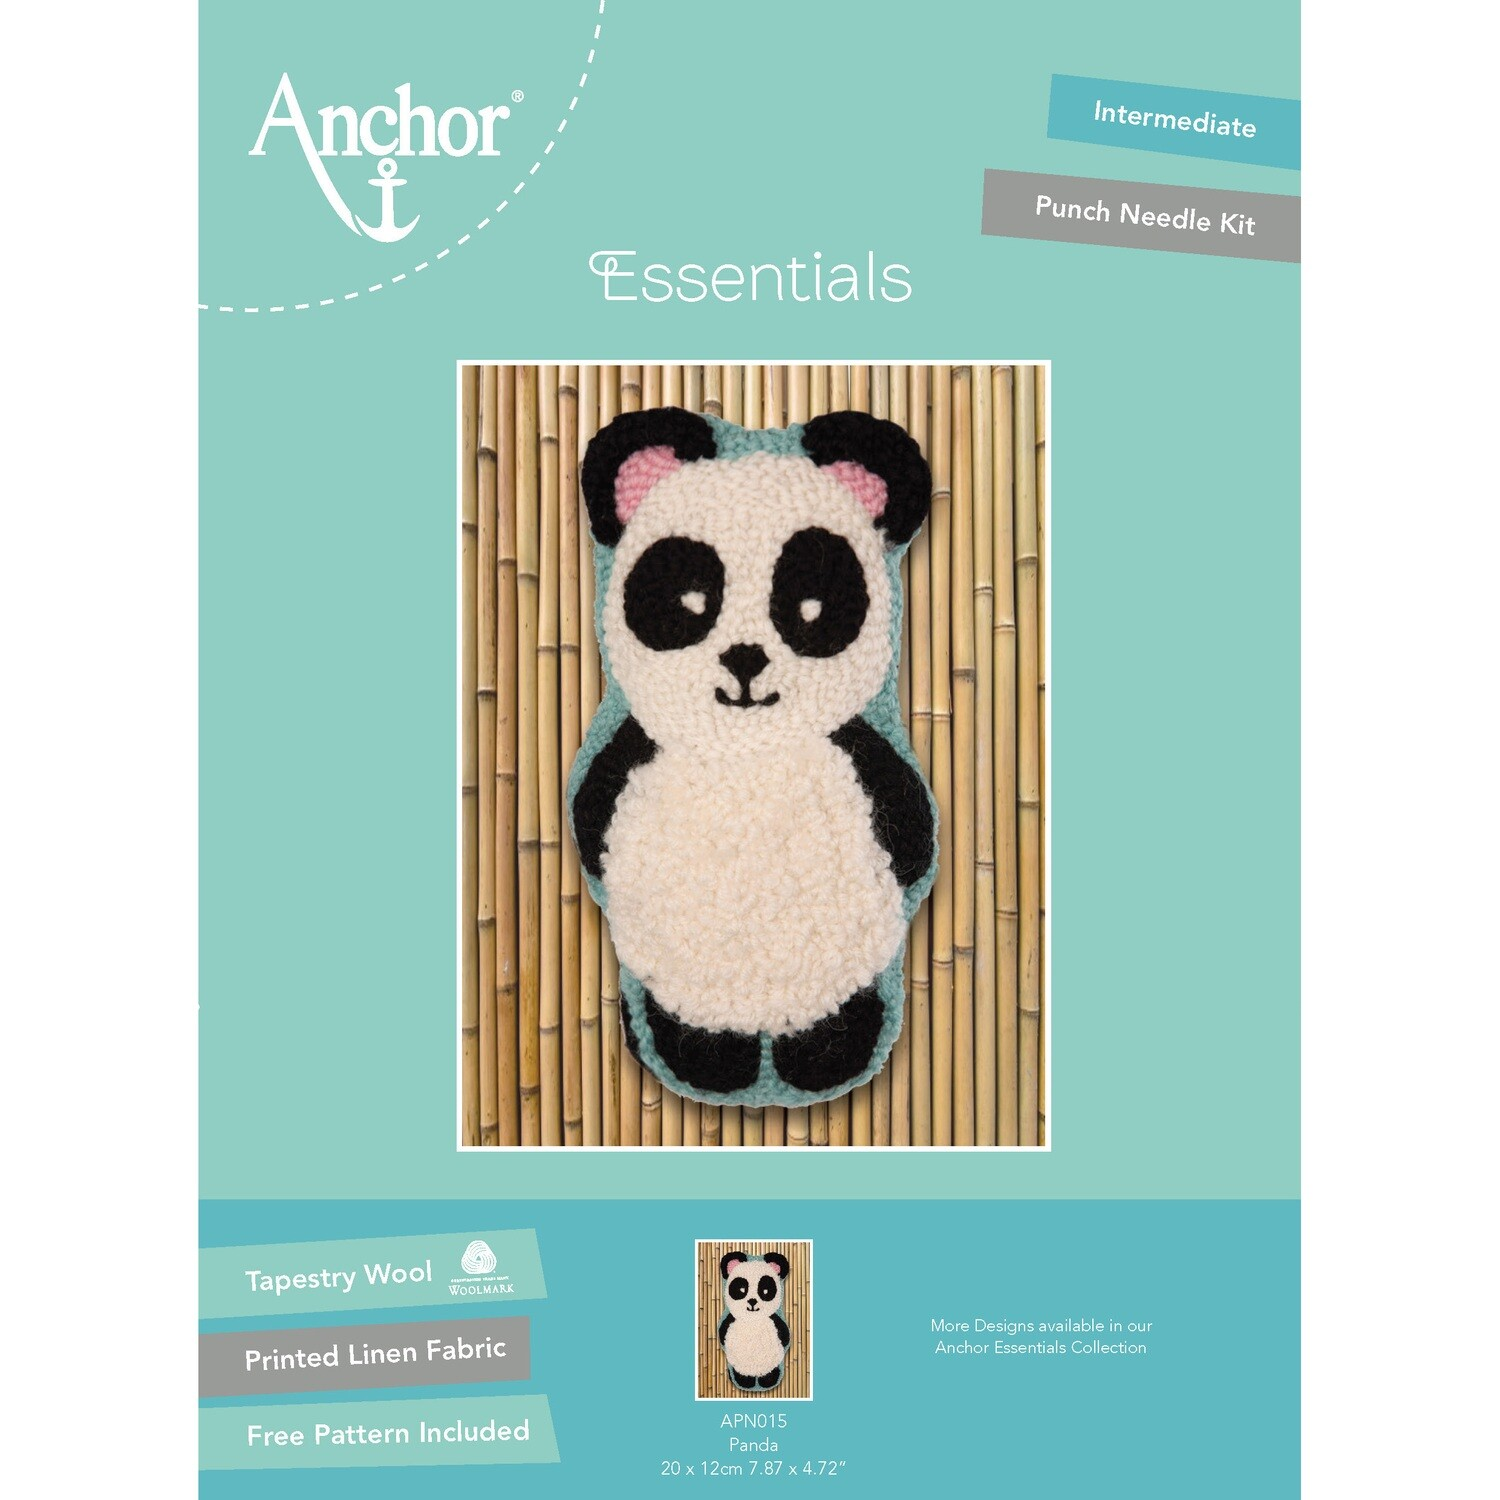 Anchor Essentials Punch Needle Kit - Panda